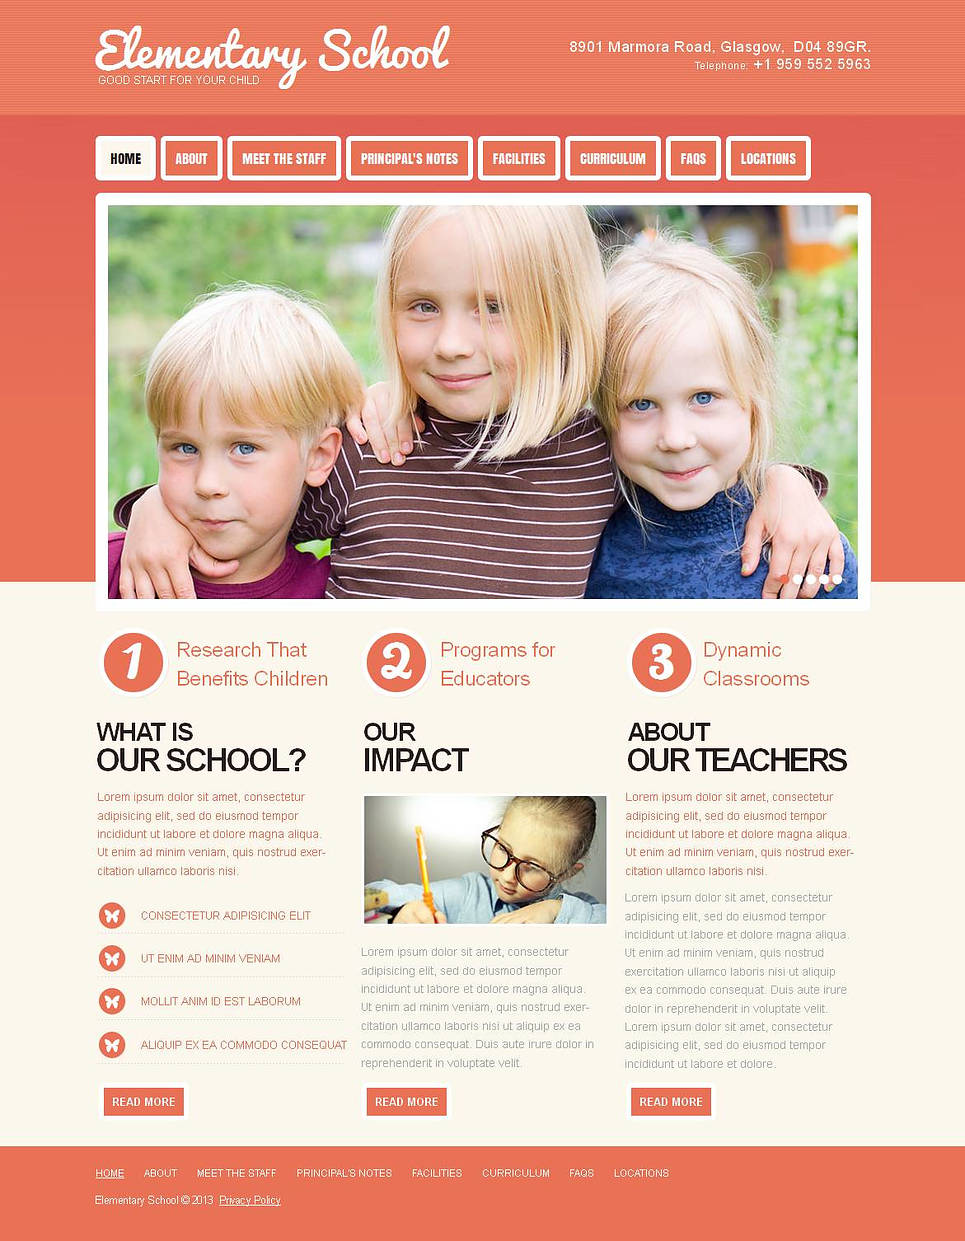 Elementary School Web Template Done in Peach Colors - image